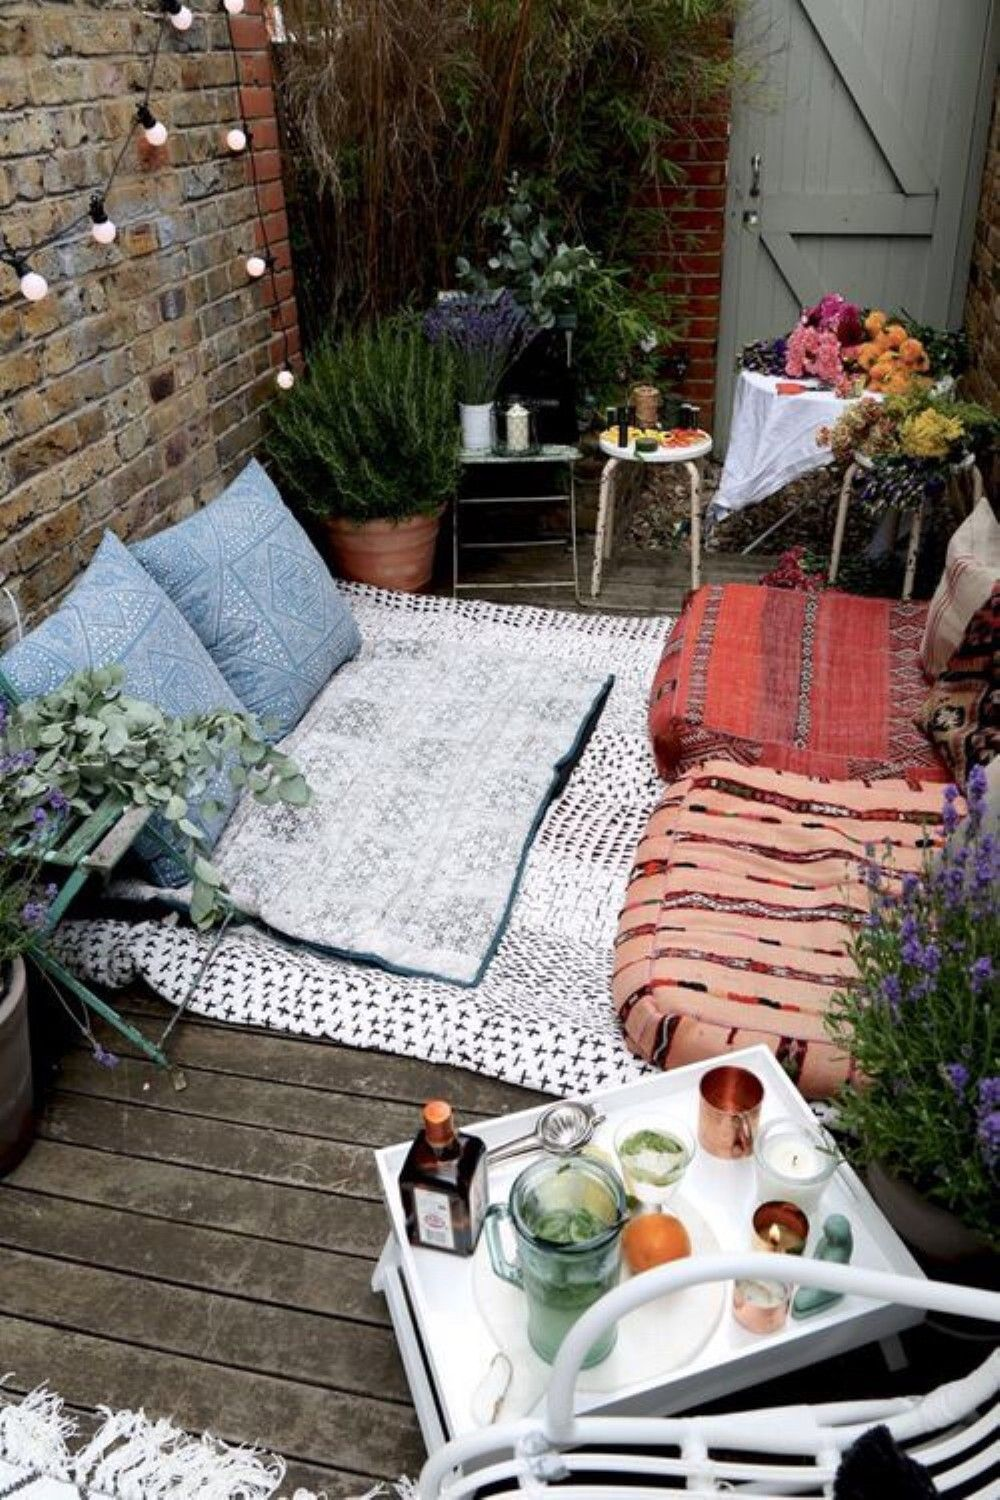 Amazing 40 Genius Hack to Remodeling Small Outdoor Space https://cooarchitecture.com/2017/04/14/40-genius-hack-remodeling-small-outdoor-space/